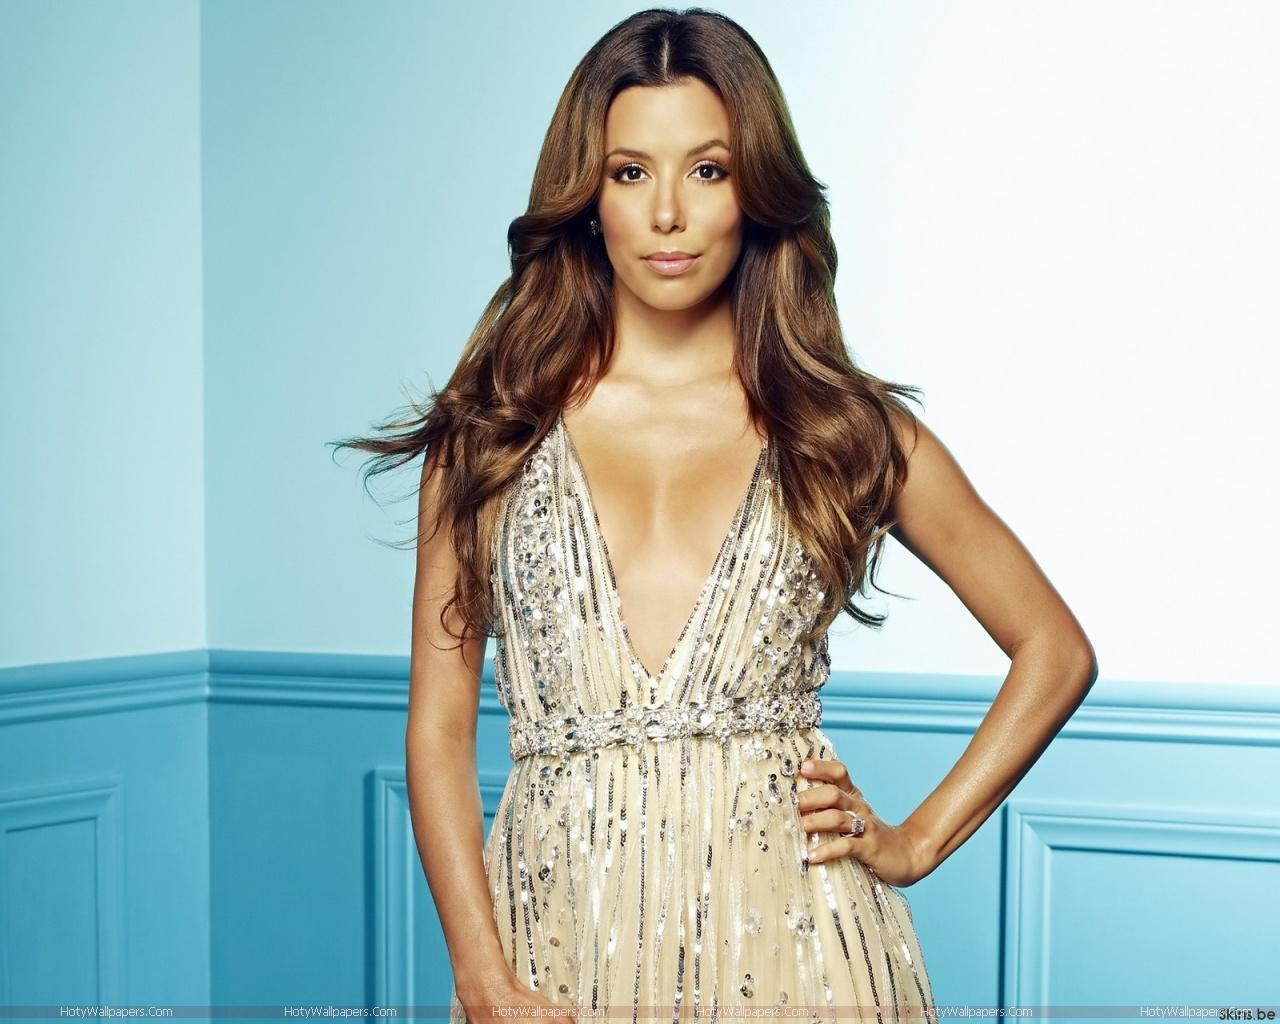 http://4.bp.blogspot.com/-HS4Fka92USQ/Tle5vFWS1KI/AAAAAAAAJ3w/J2p_h_DkjGc/s1600/hollywood-actress-Eva-Longoria-wide-wallpaper.jpg